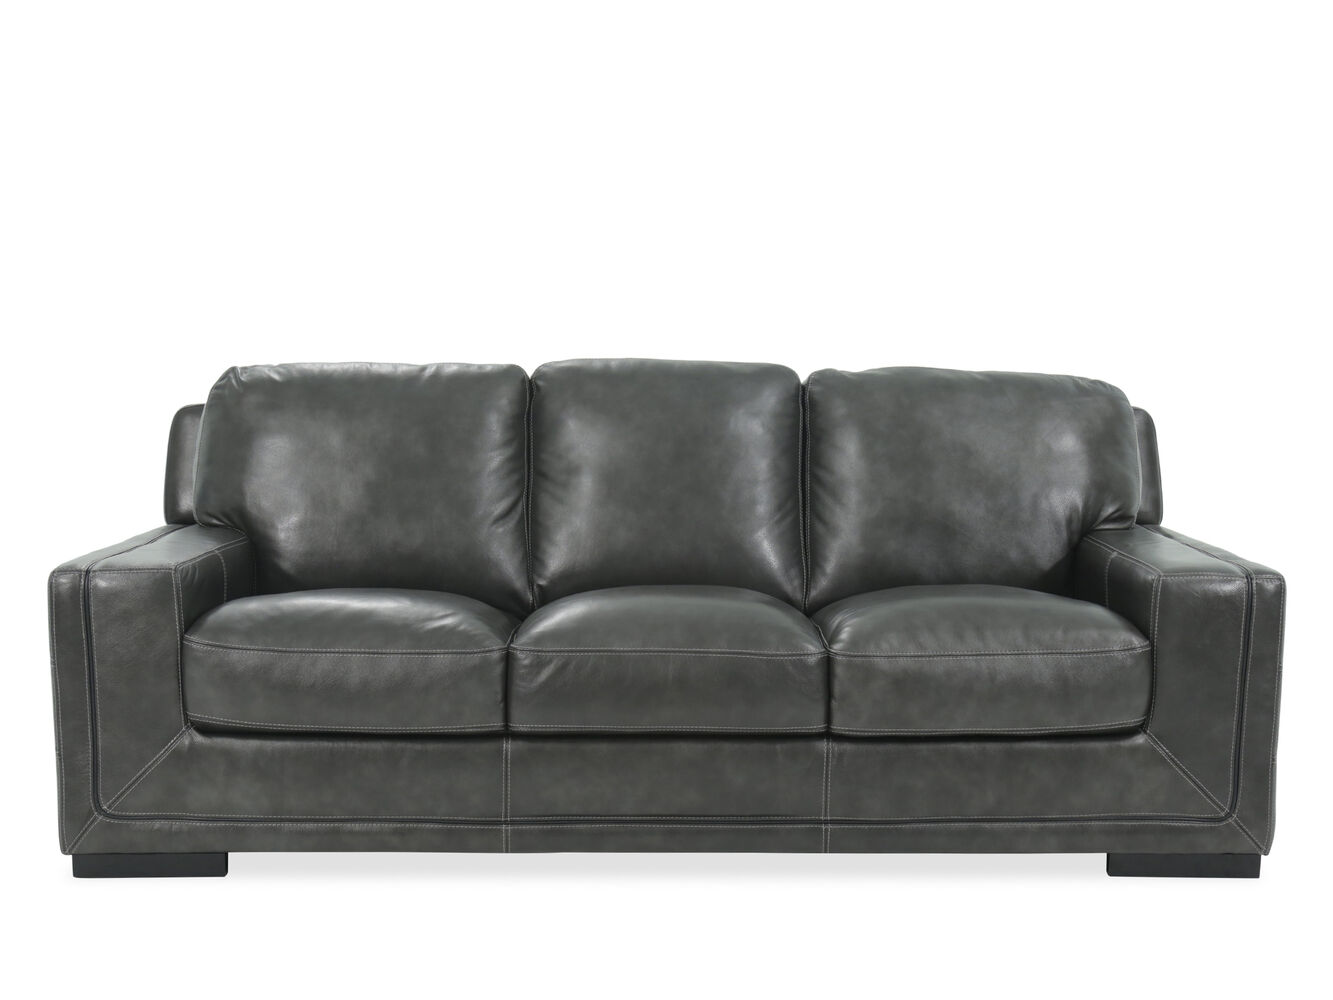 Traditional 93 leather sofa in pewter gray mathis for Traditional leather sofas furniture